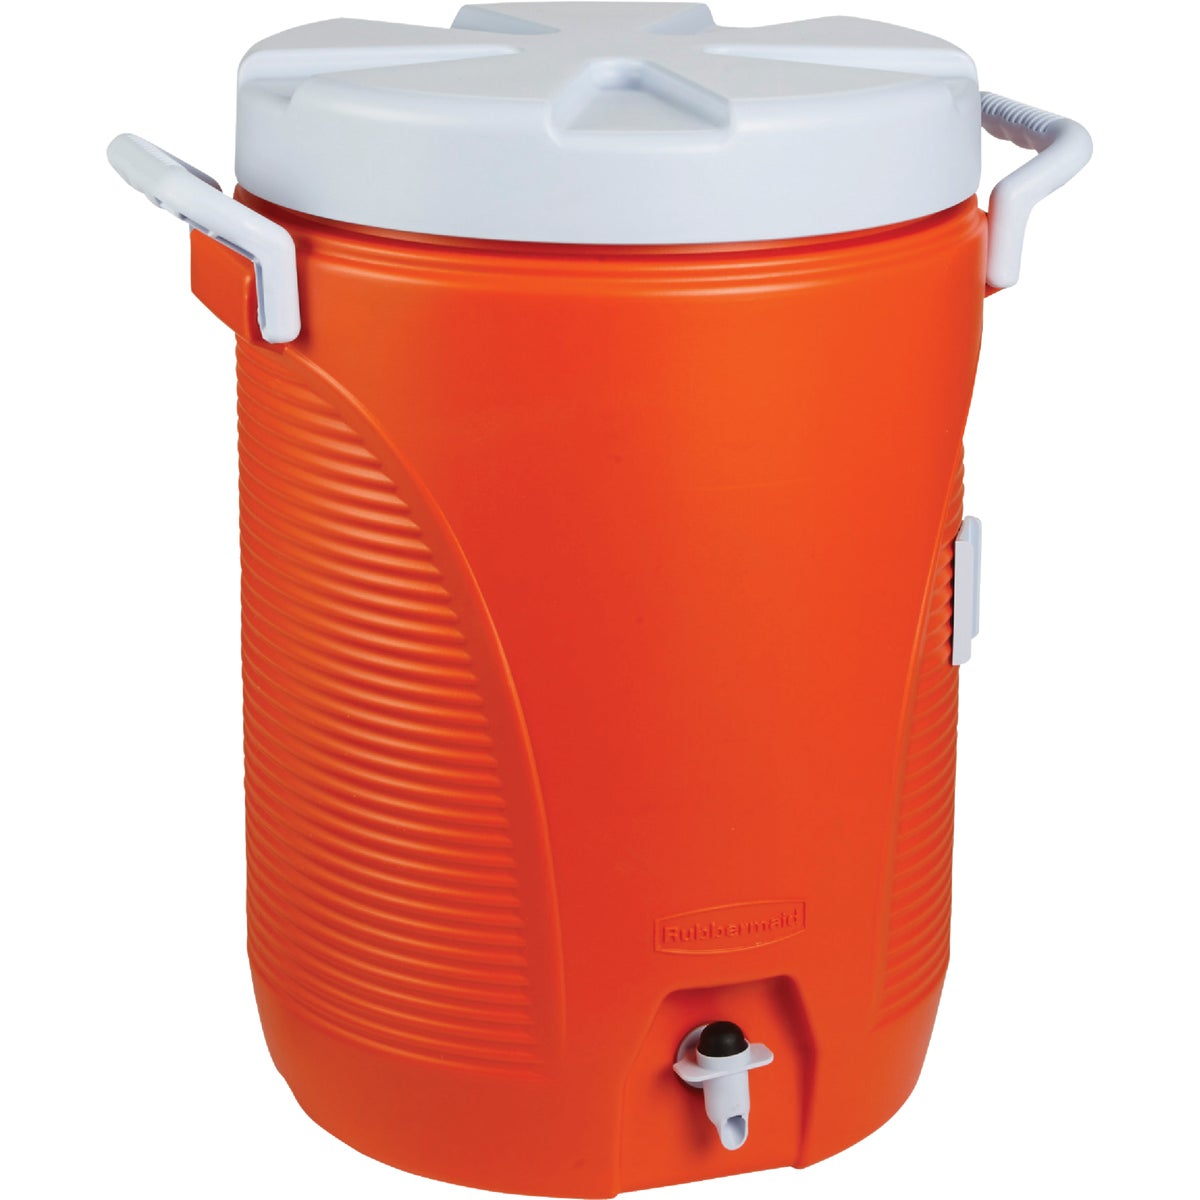 5GAL ORNG WATER COOLER - 1840999 by Rubbermaid